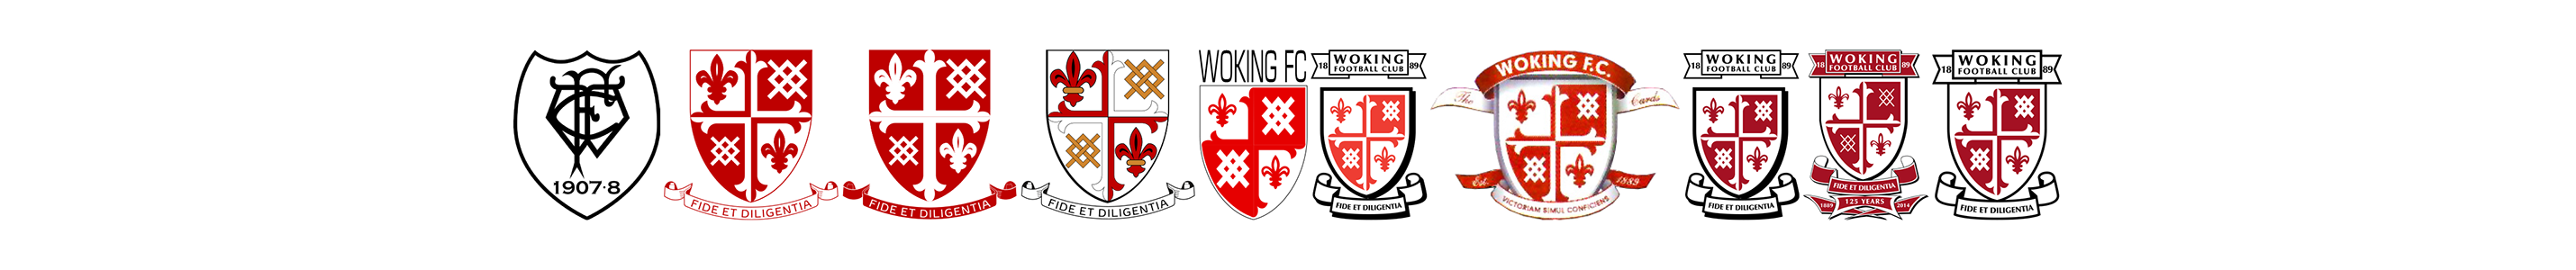 Woking Football Club Badges